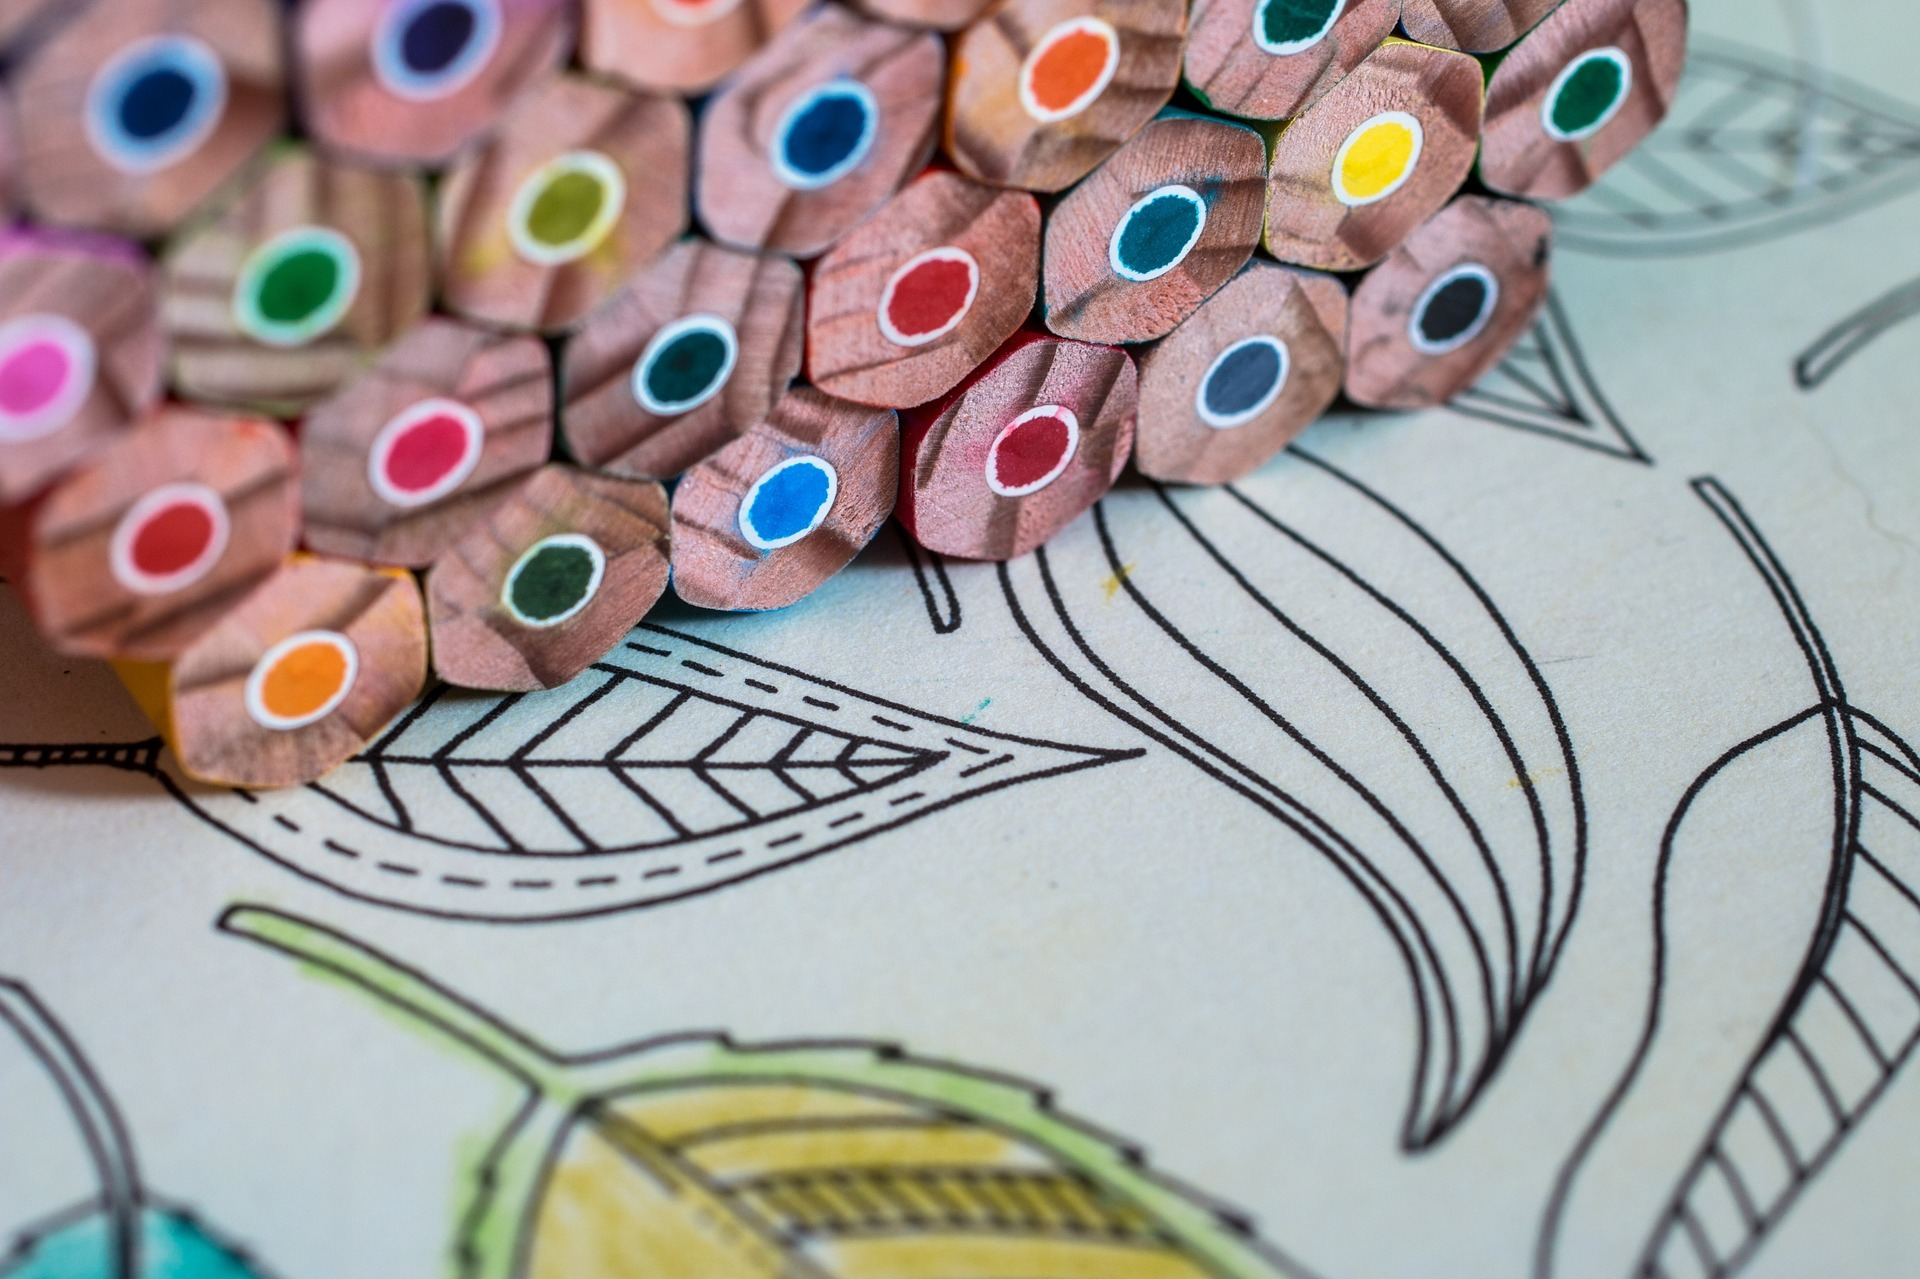 Adult Coloring Books reduce stress